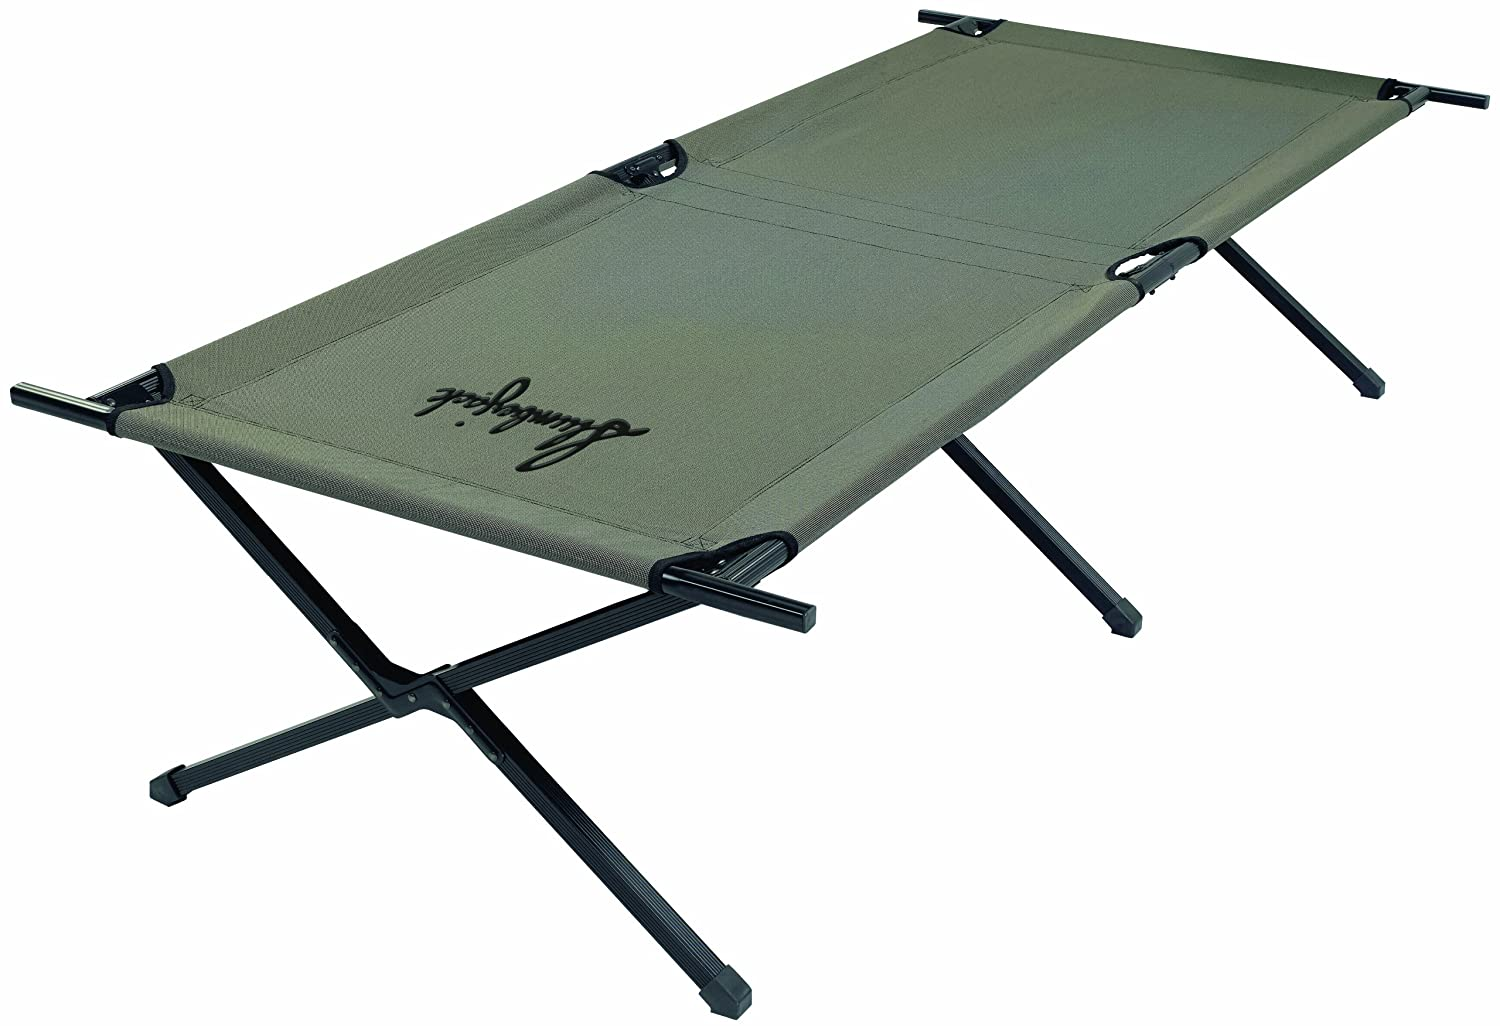 Best Camping Cot Guide Camping Cot Guide